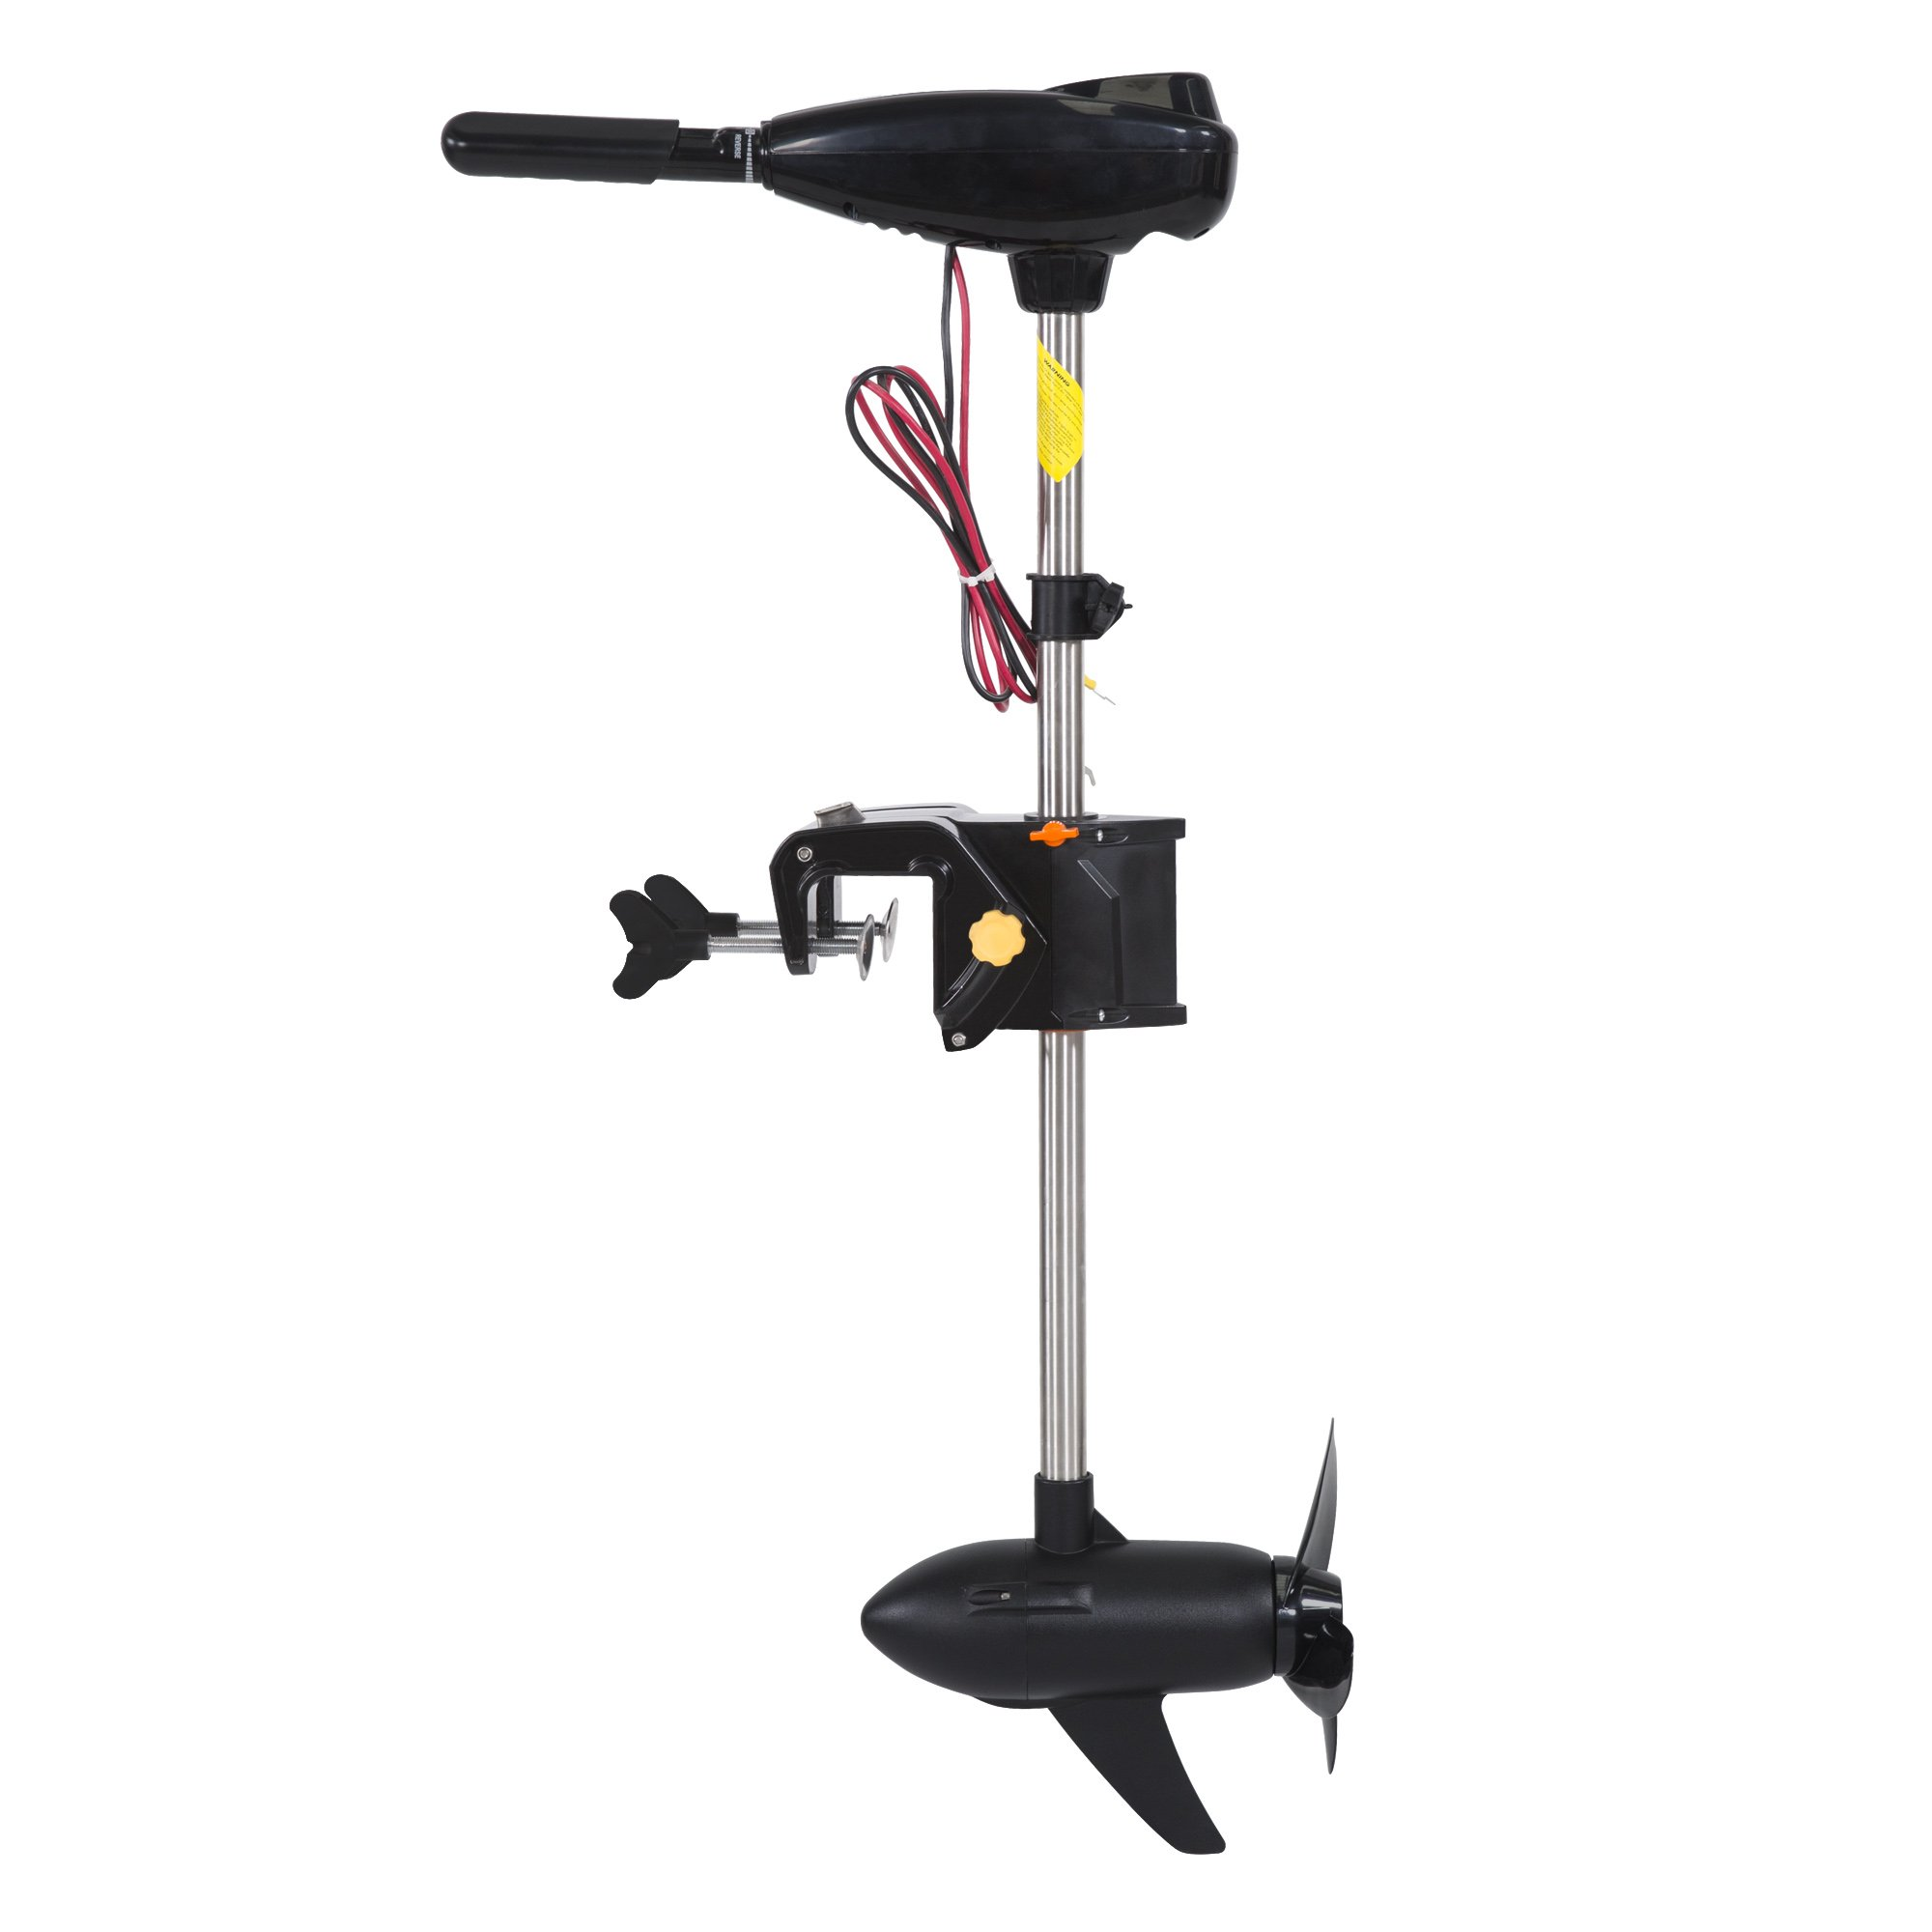 Cloud Mountain Brushless Electric Trolling Motor with Stepless Speed Control 200LBS 24V by Cloud Mountain